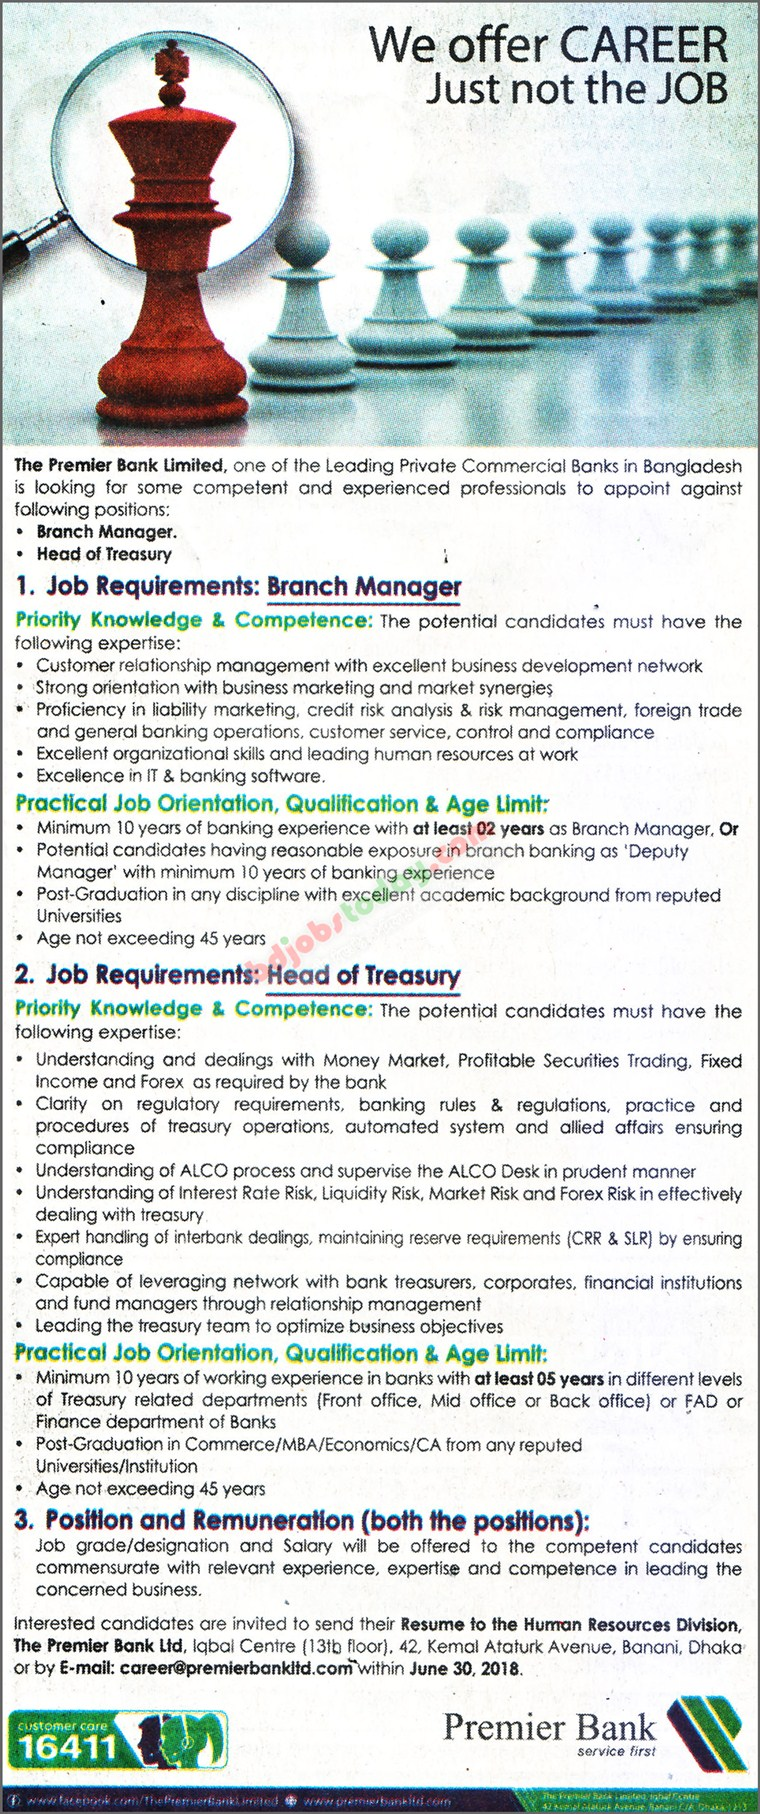 The Premier Bank Limited jobs